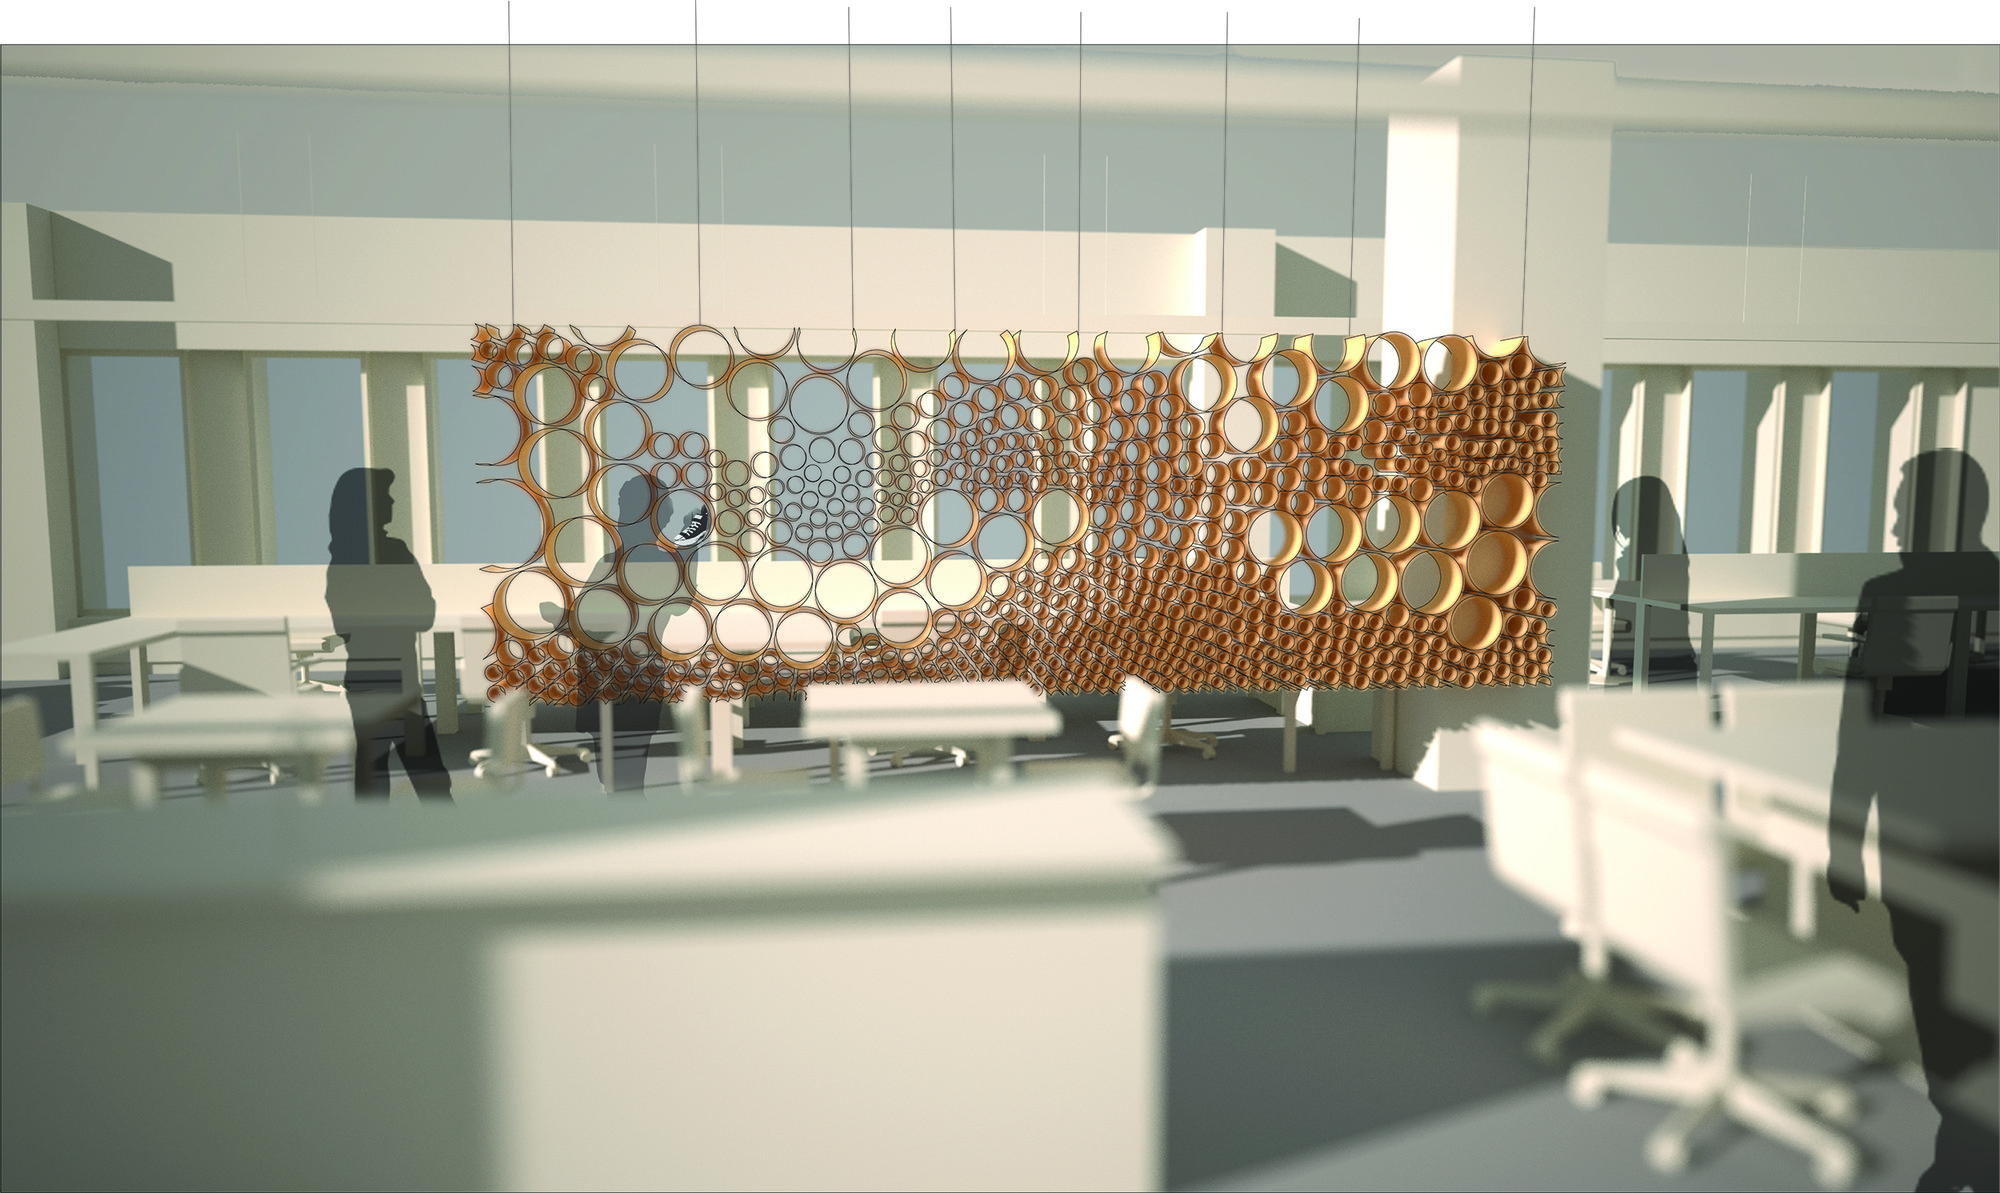 cardboard tube furniture. Cardboard Tube Furniture. Phase One Perspective Rendering. Image Courtesy Of Perkins + Will Furniture U